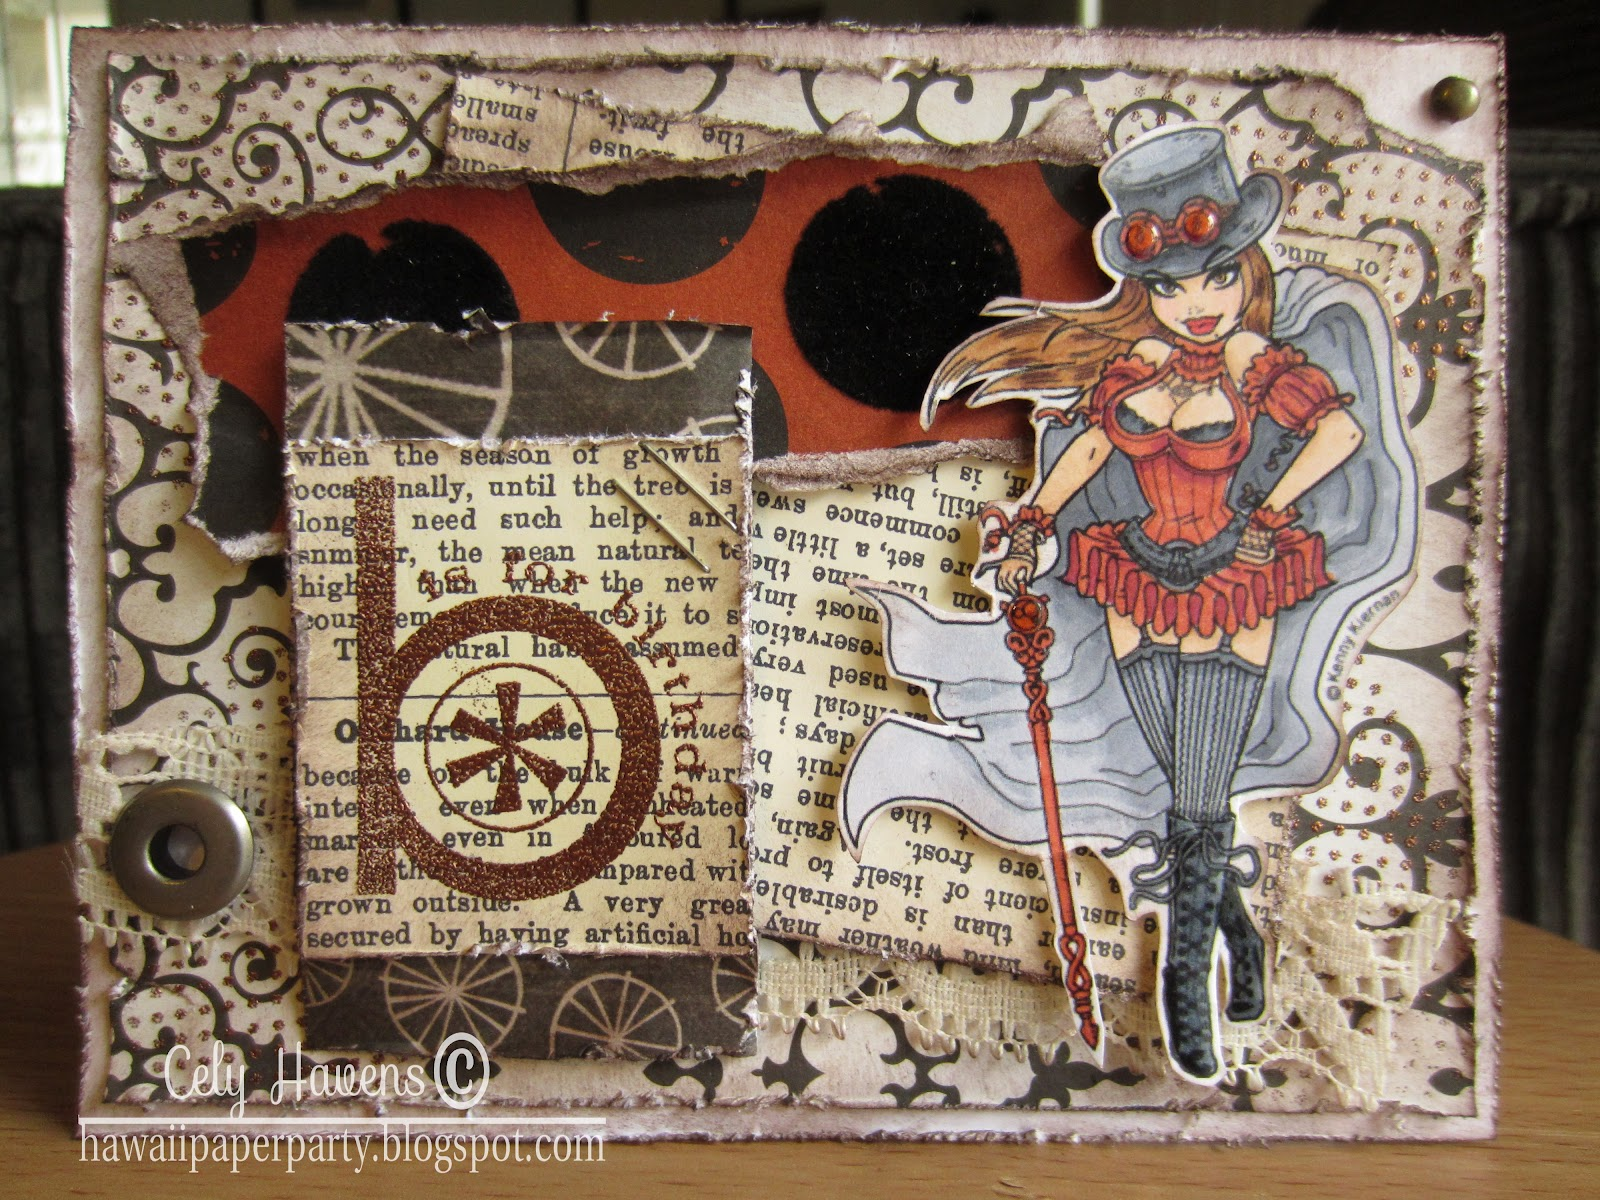 Hawaii Paper Party Steampunk Birthday Card – Steampunk Birthday Card